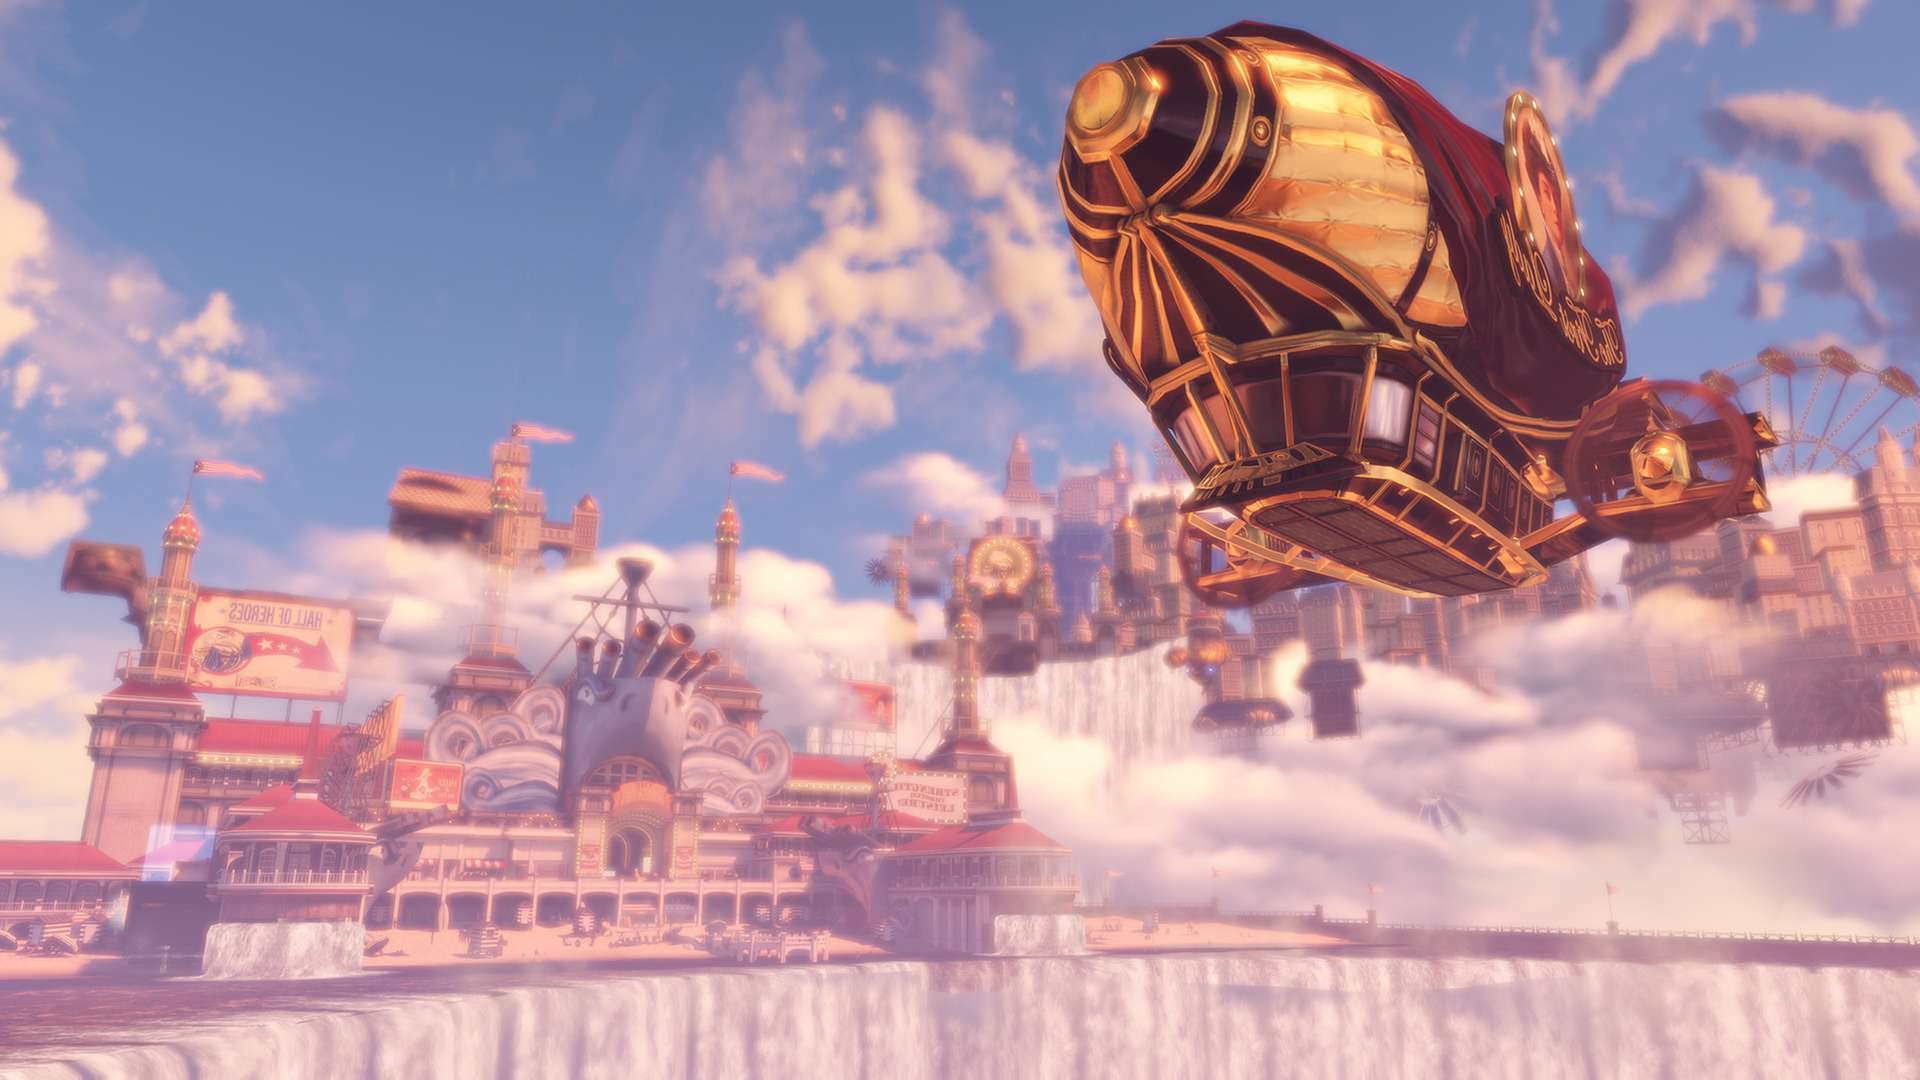 Bioshock Infinite Wallpapers 1080p 3F233FH   4USkY 1920x1080